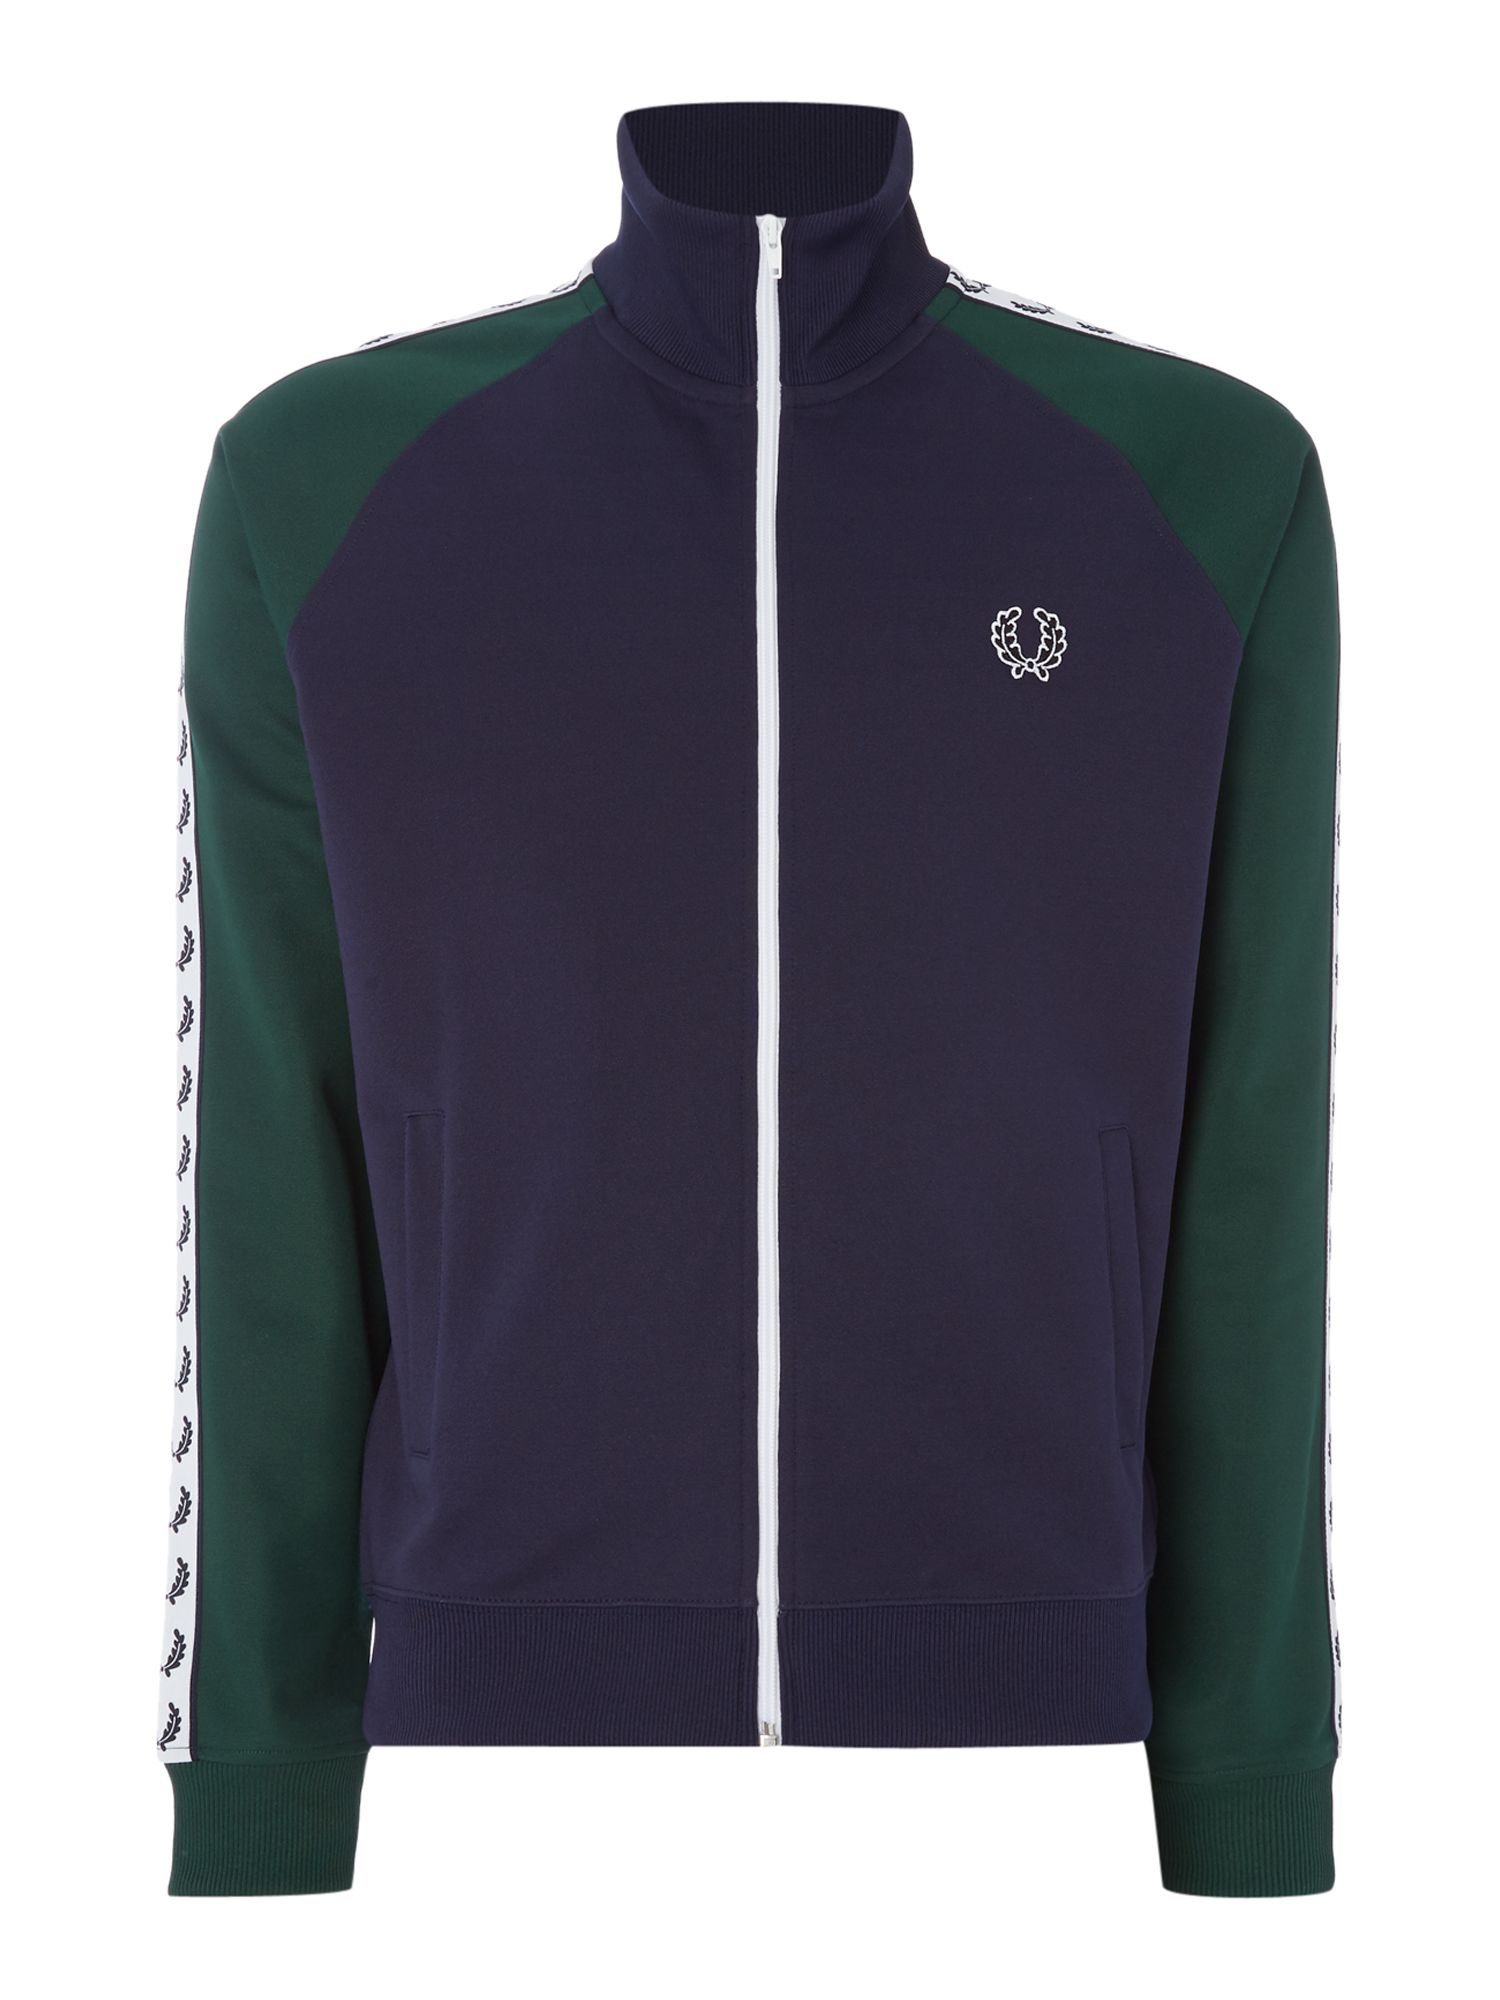 Mens Fred Perry Taped track jacket Navy